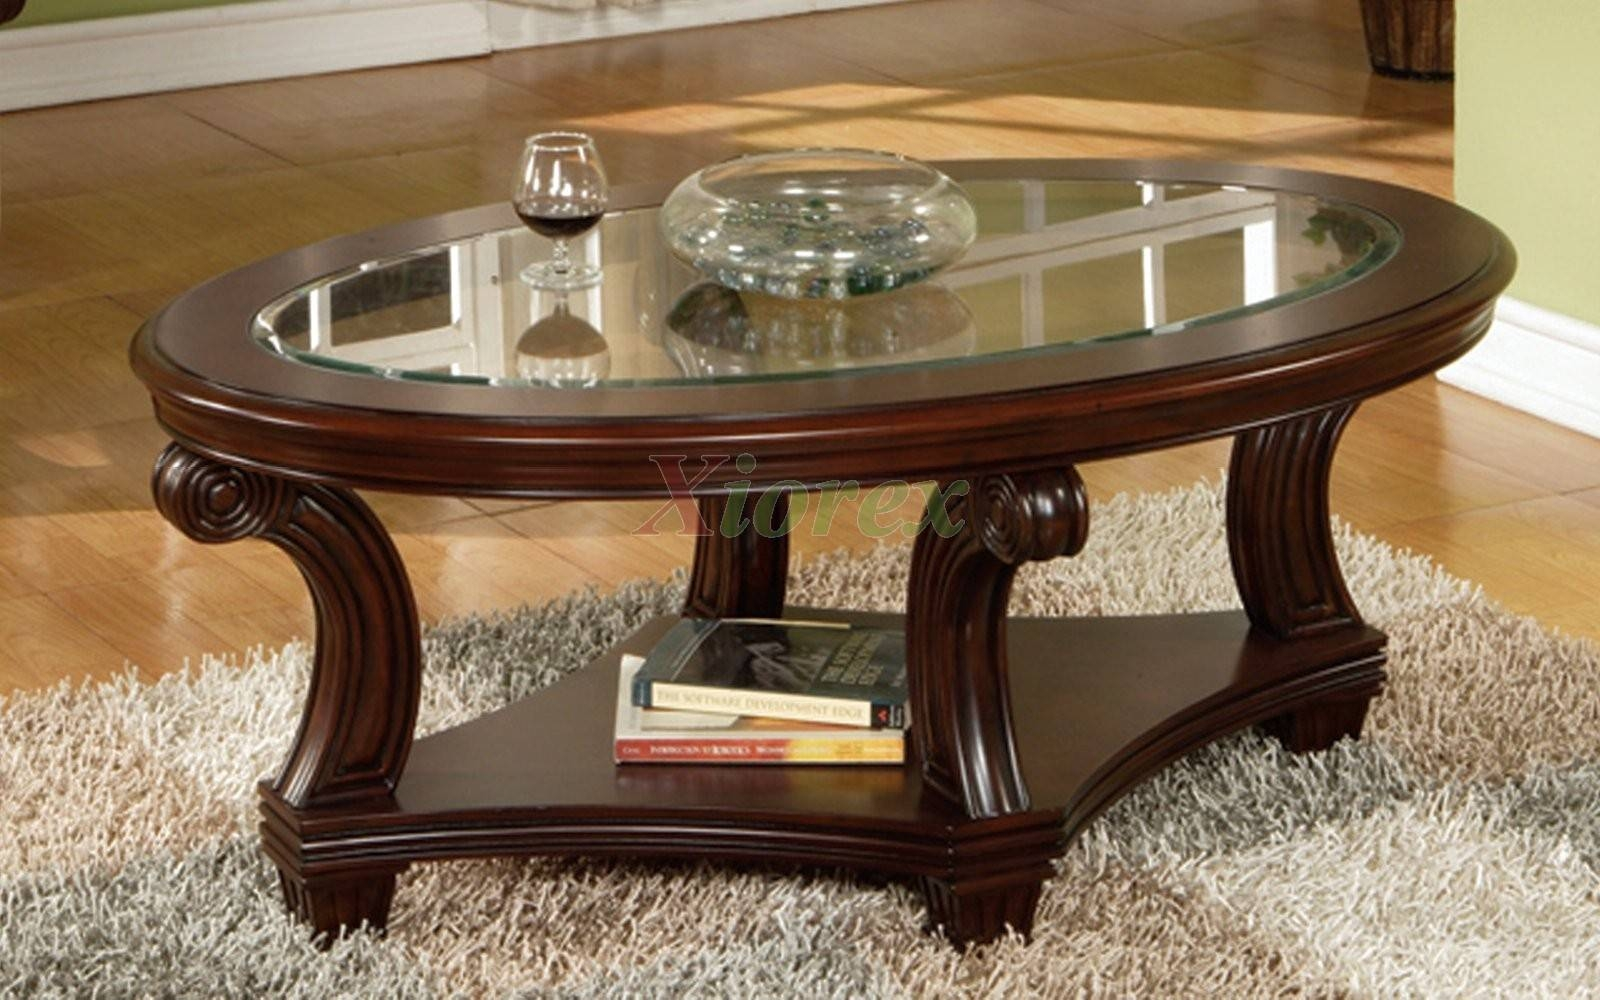 Encore Oval Shaped Coffee Table Contemporary Focus For Glass in Coffee Tables With Oval Shape (Image 14 of 30)